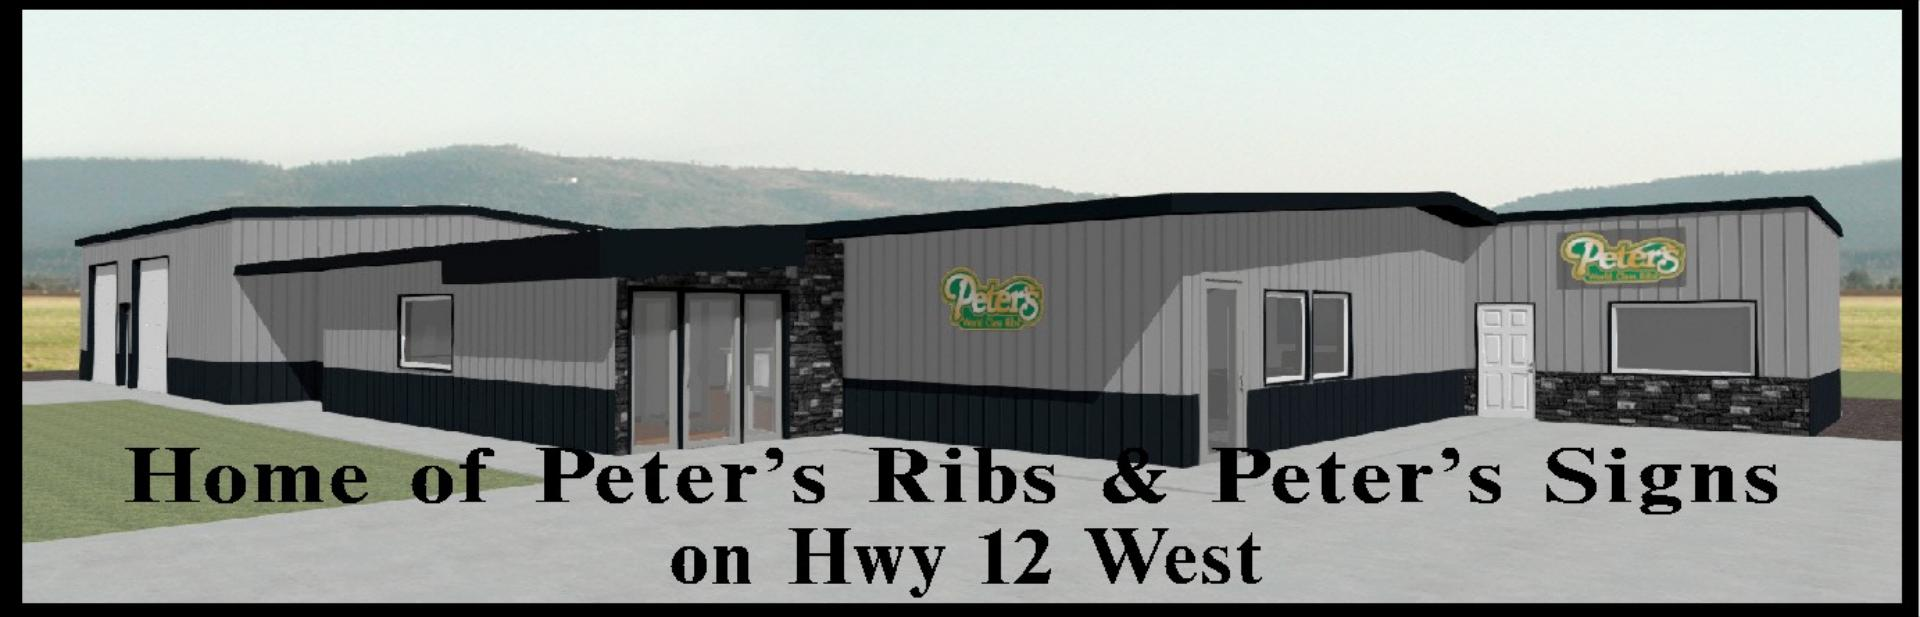 Home of Peter's Ribs & Peter's Sign on Hwy 12 West